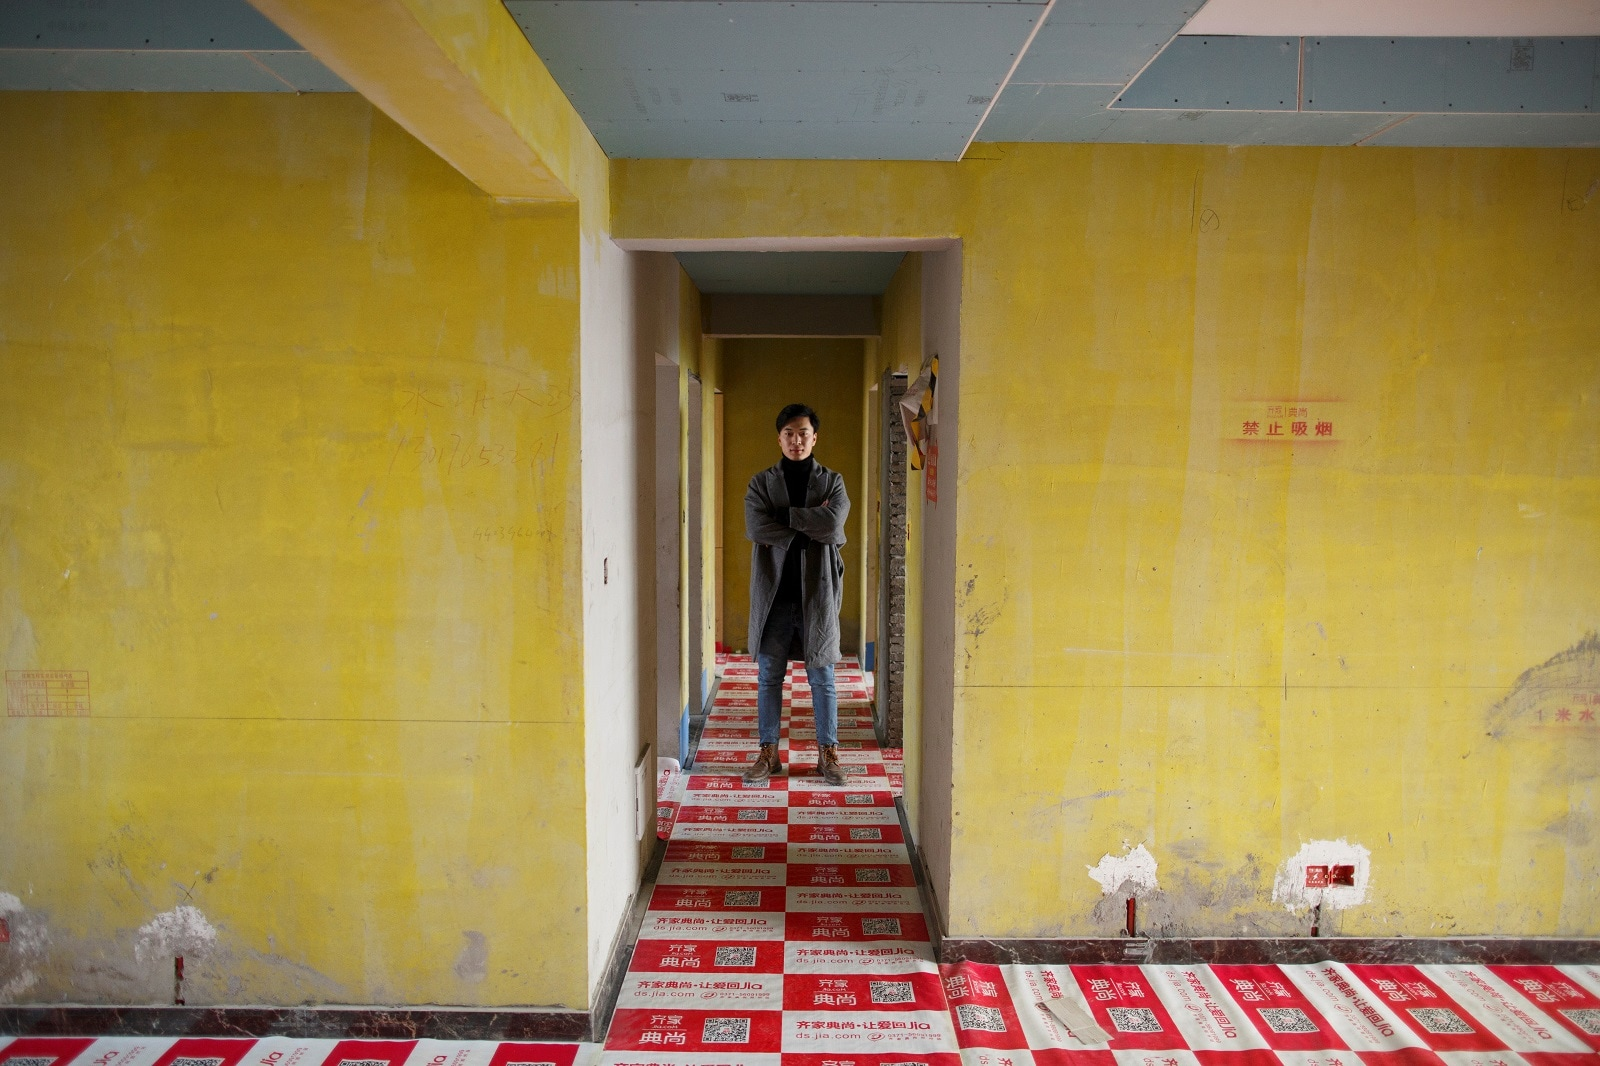 Interior designer Zhang Chenxuan, who has run an interior design business in Zhengzhou for seven years, poses in an apartment his company is fitting out in a high-rise in Zhengzhou, Henan province, China, February 20, 2019. REUTERS/Thomas Peter